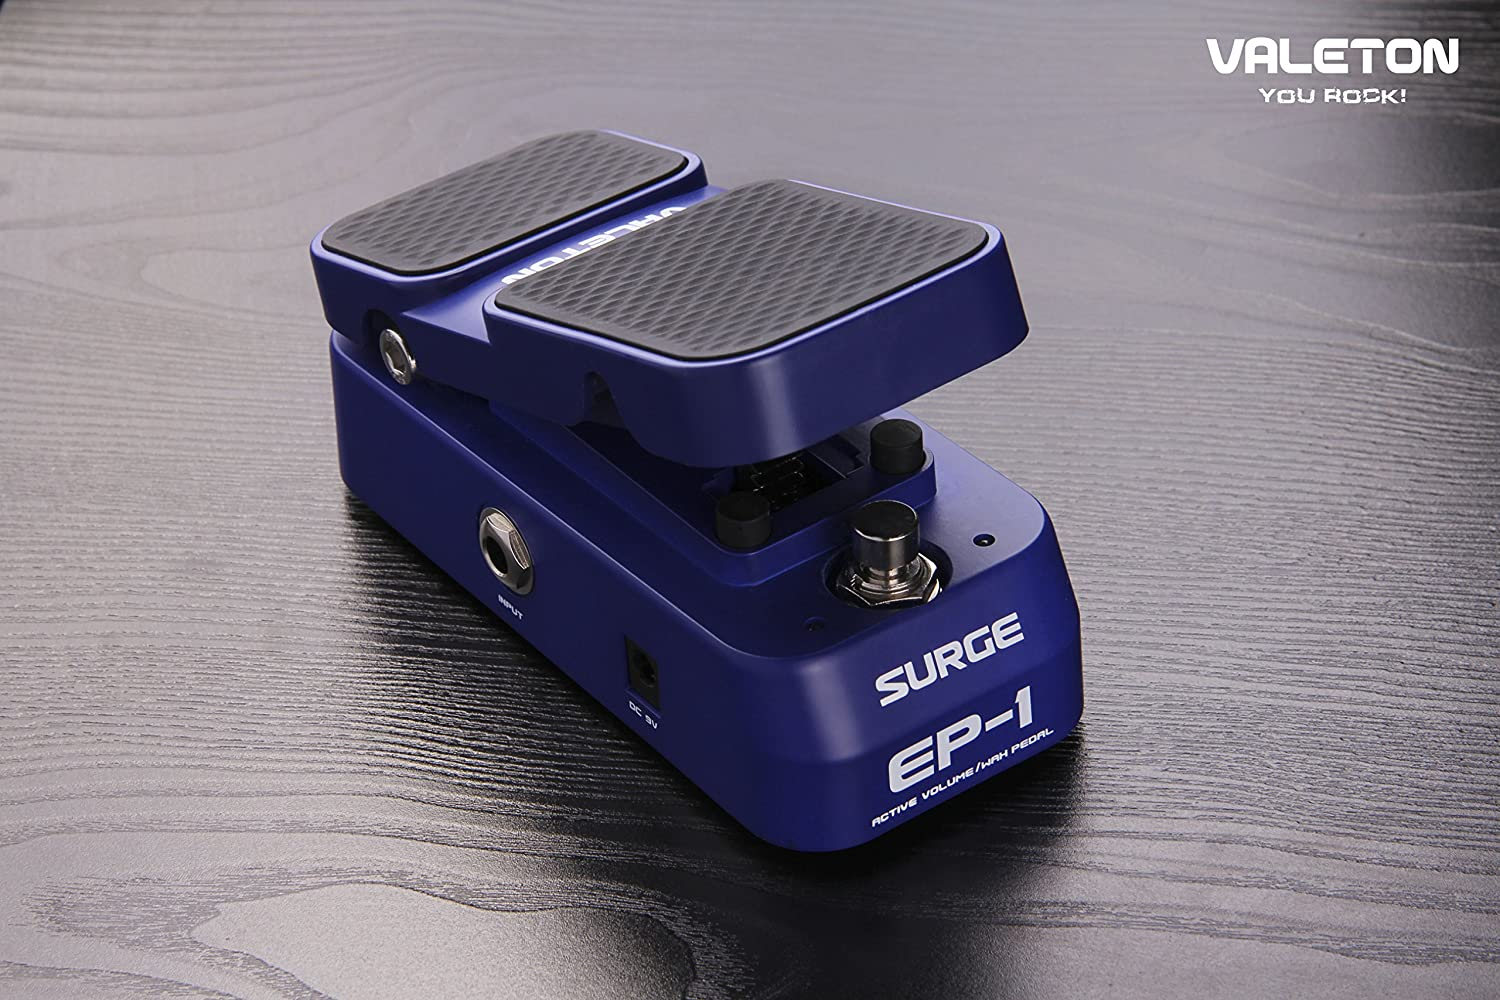 Valeton Surge EP-1 Mini Wah/Active Volume Guitar Effect Mini Pedal (EP-1)